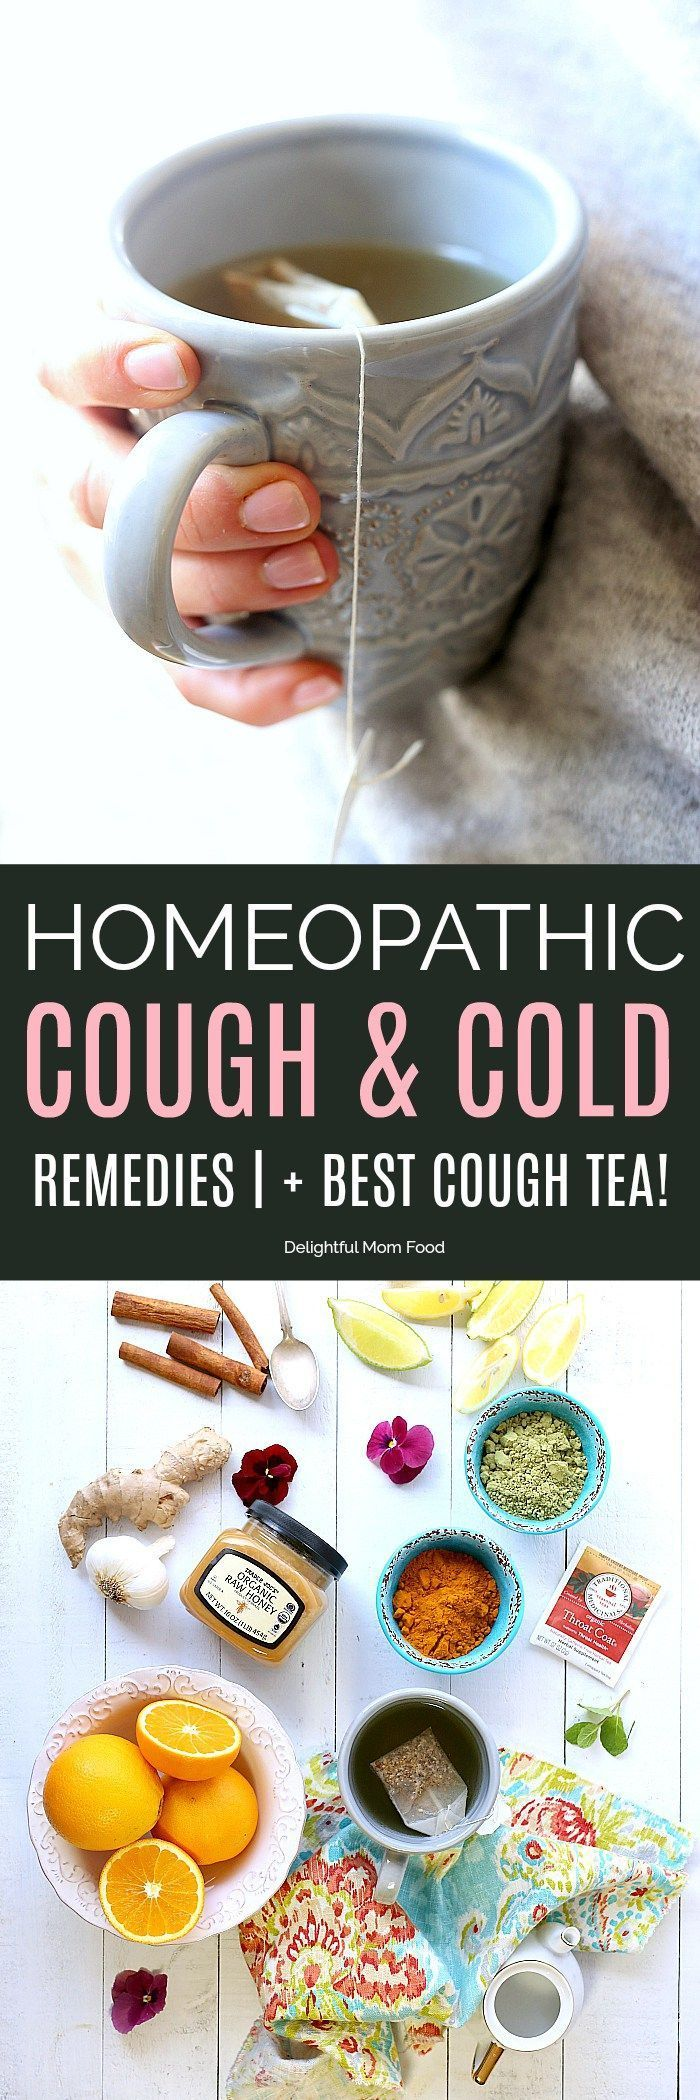 Natural remedies for cough, cold and flu symptoms to help heal your body quickly, boost immunity plus grandma's best tea recipe to fight a naughty cough that doesn't seem to go away!#homeopathic #remedies #healing #cough #cold #flu #home #natural #tea | Delightfulmomfood.comDelightful Mom Food